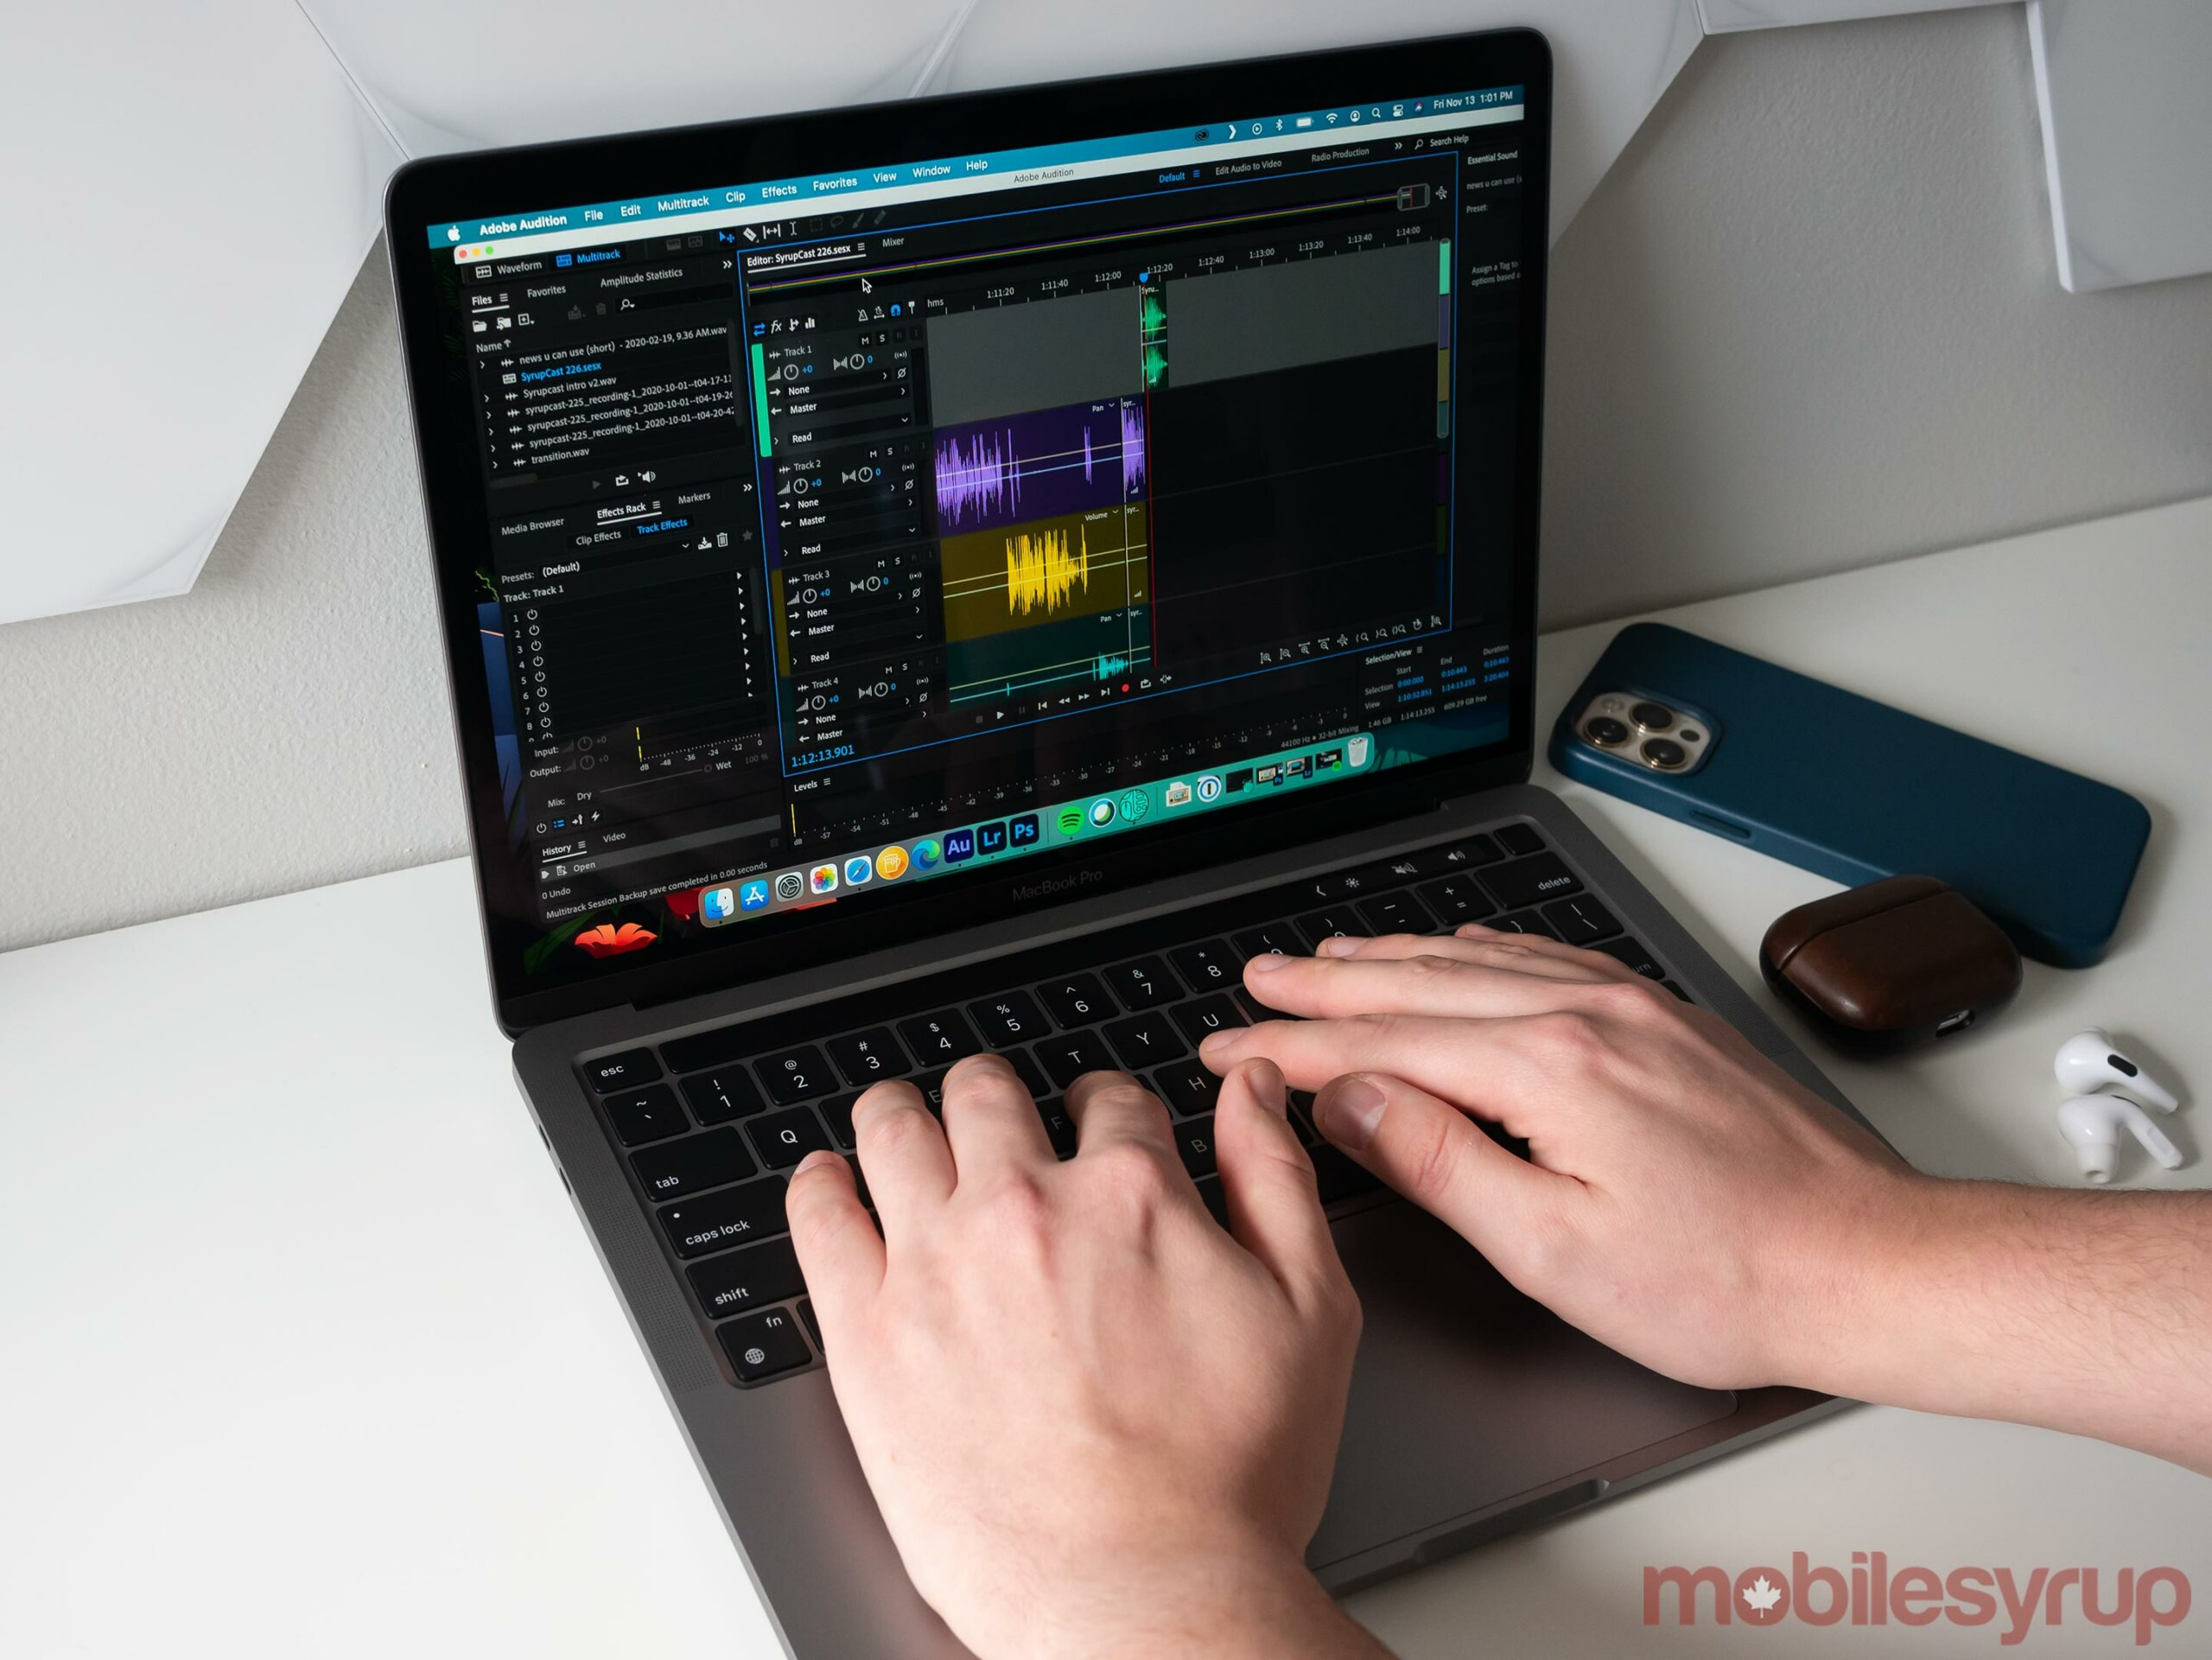 13-inch MacBook Pro with M1